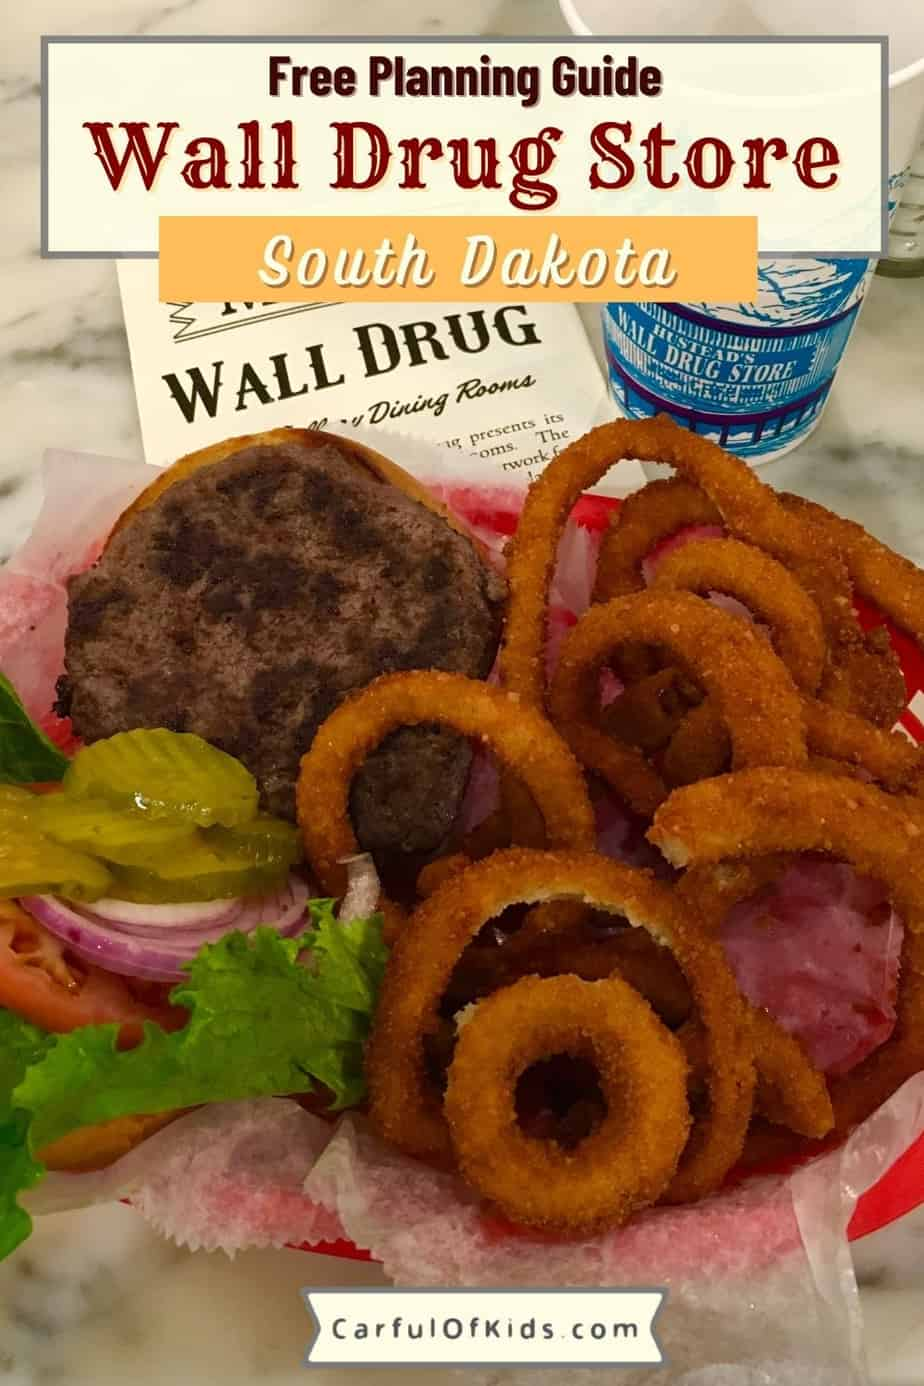 Wall Drug Store along Interstate 90 in South Dakota sells everything a traveler forgot at home along with a cafe packed with burgers, donuts and more. Where's Wall Drug Store   What to do in South Dakota   Where to eat in the Black Hills   Where to eat near Badlands #SouthDakota #WallDrug #BlackHills